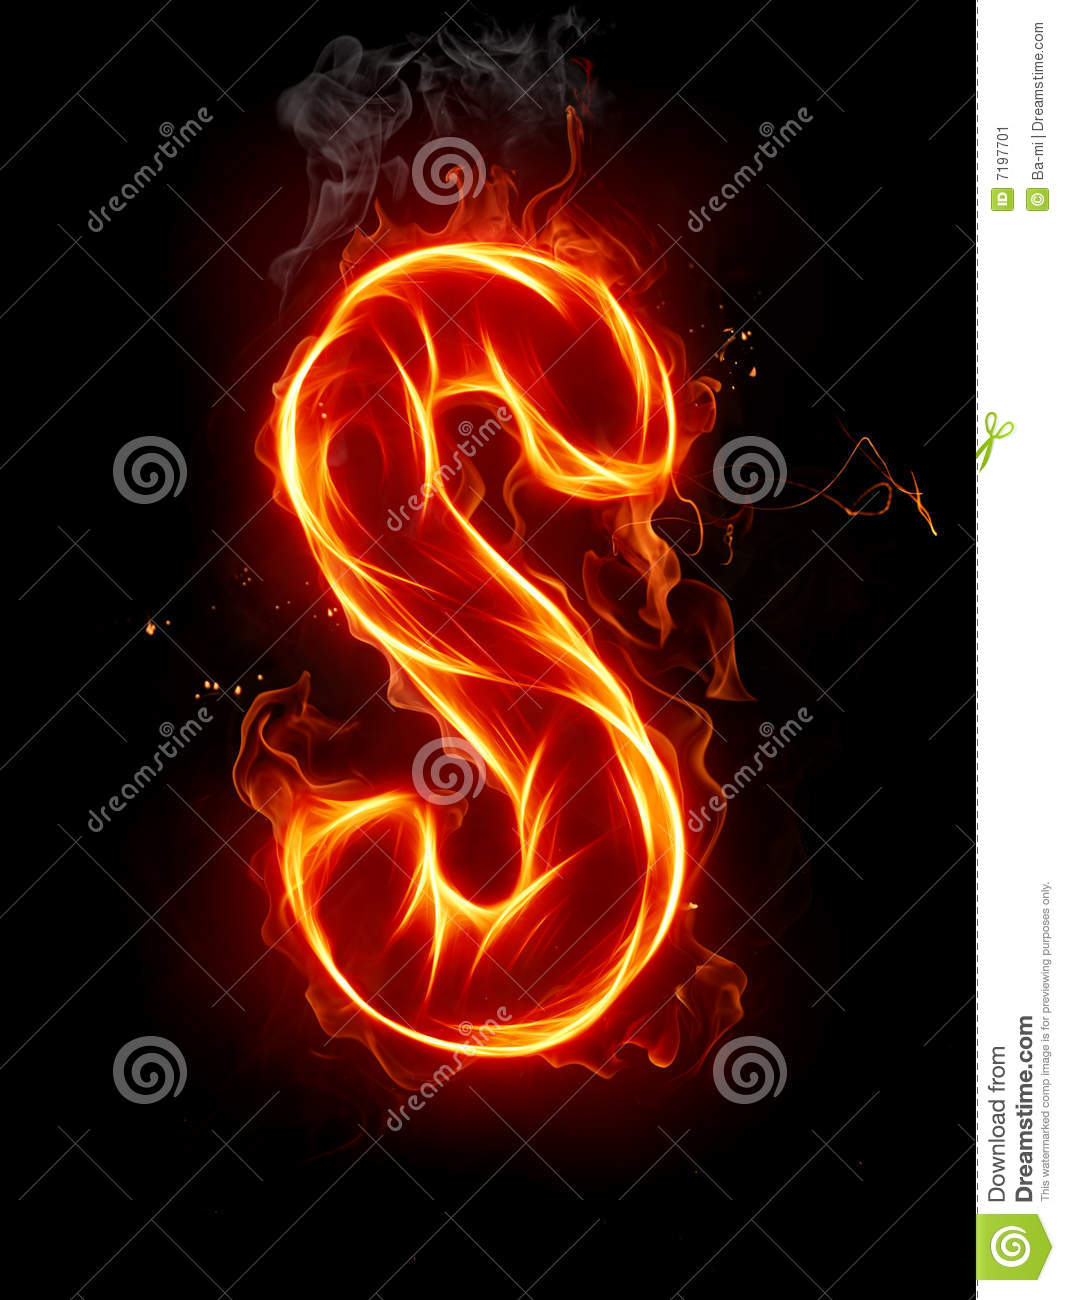 c4e42d17d07212 Letters And Symbols In Fire - Letter S. Stock Photo, Picture And ..